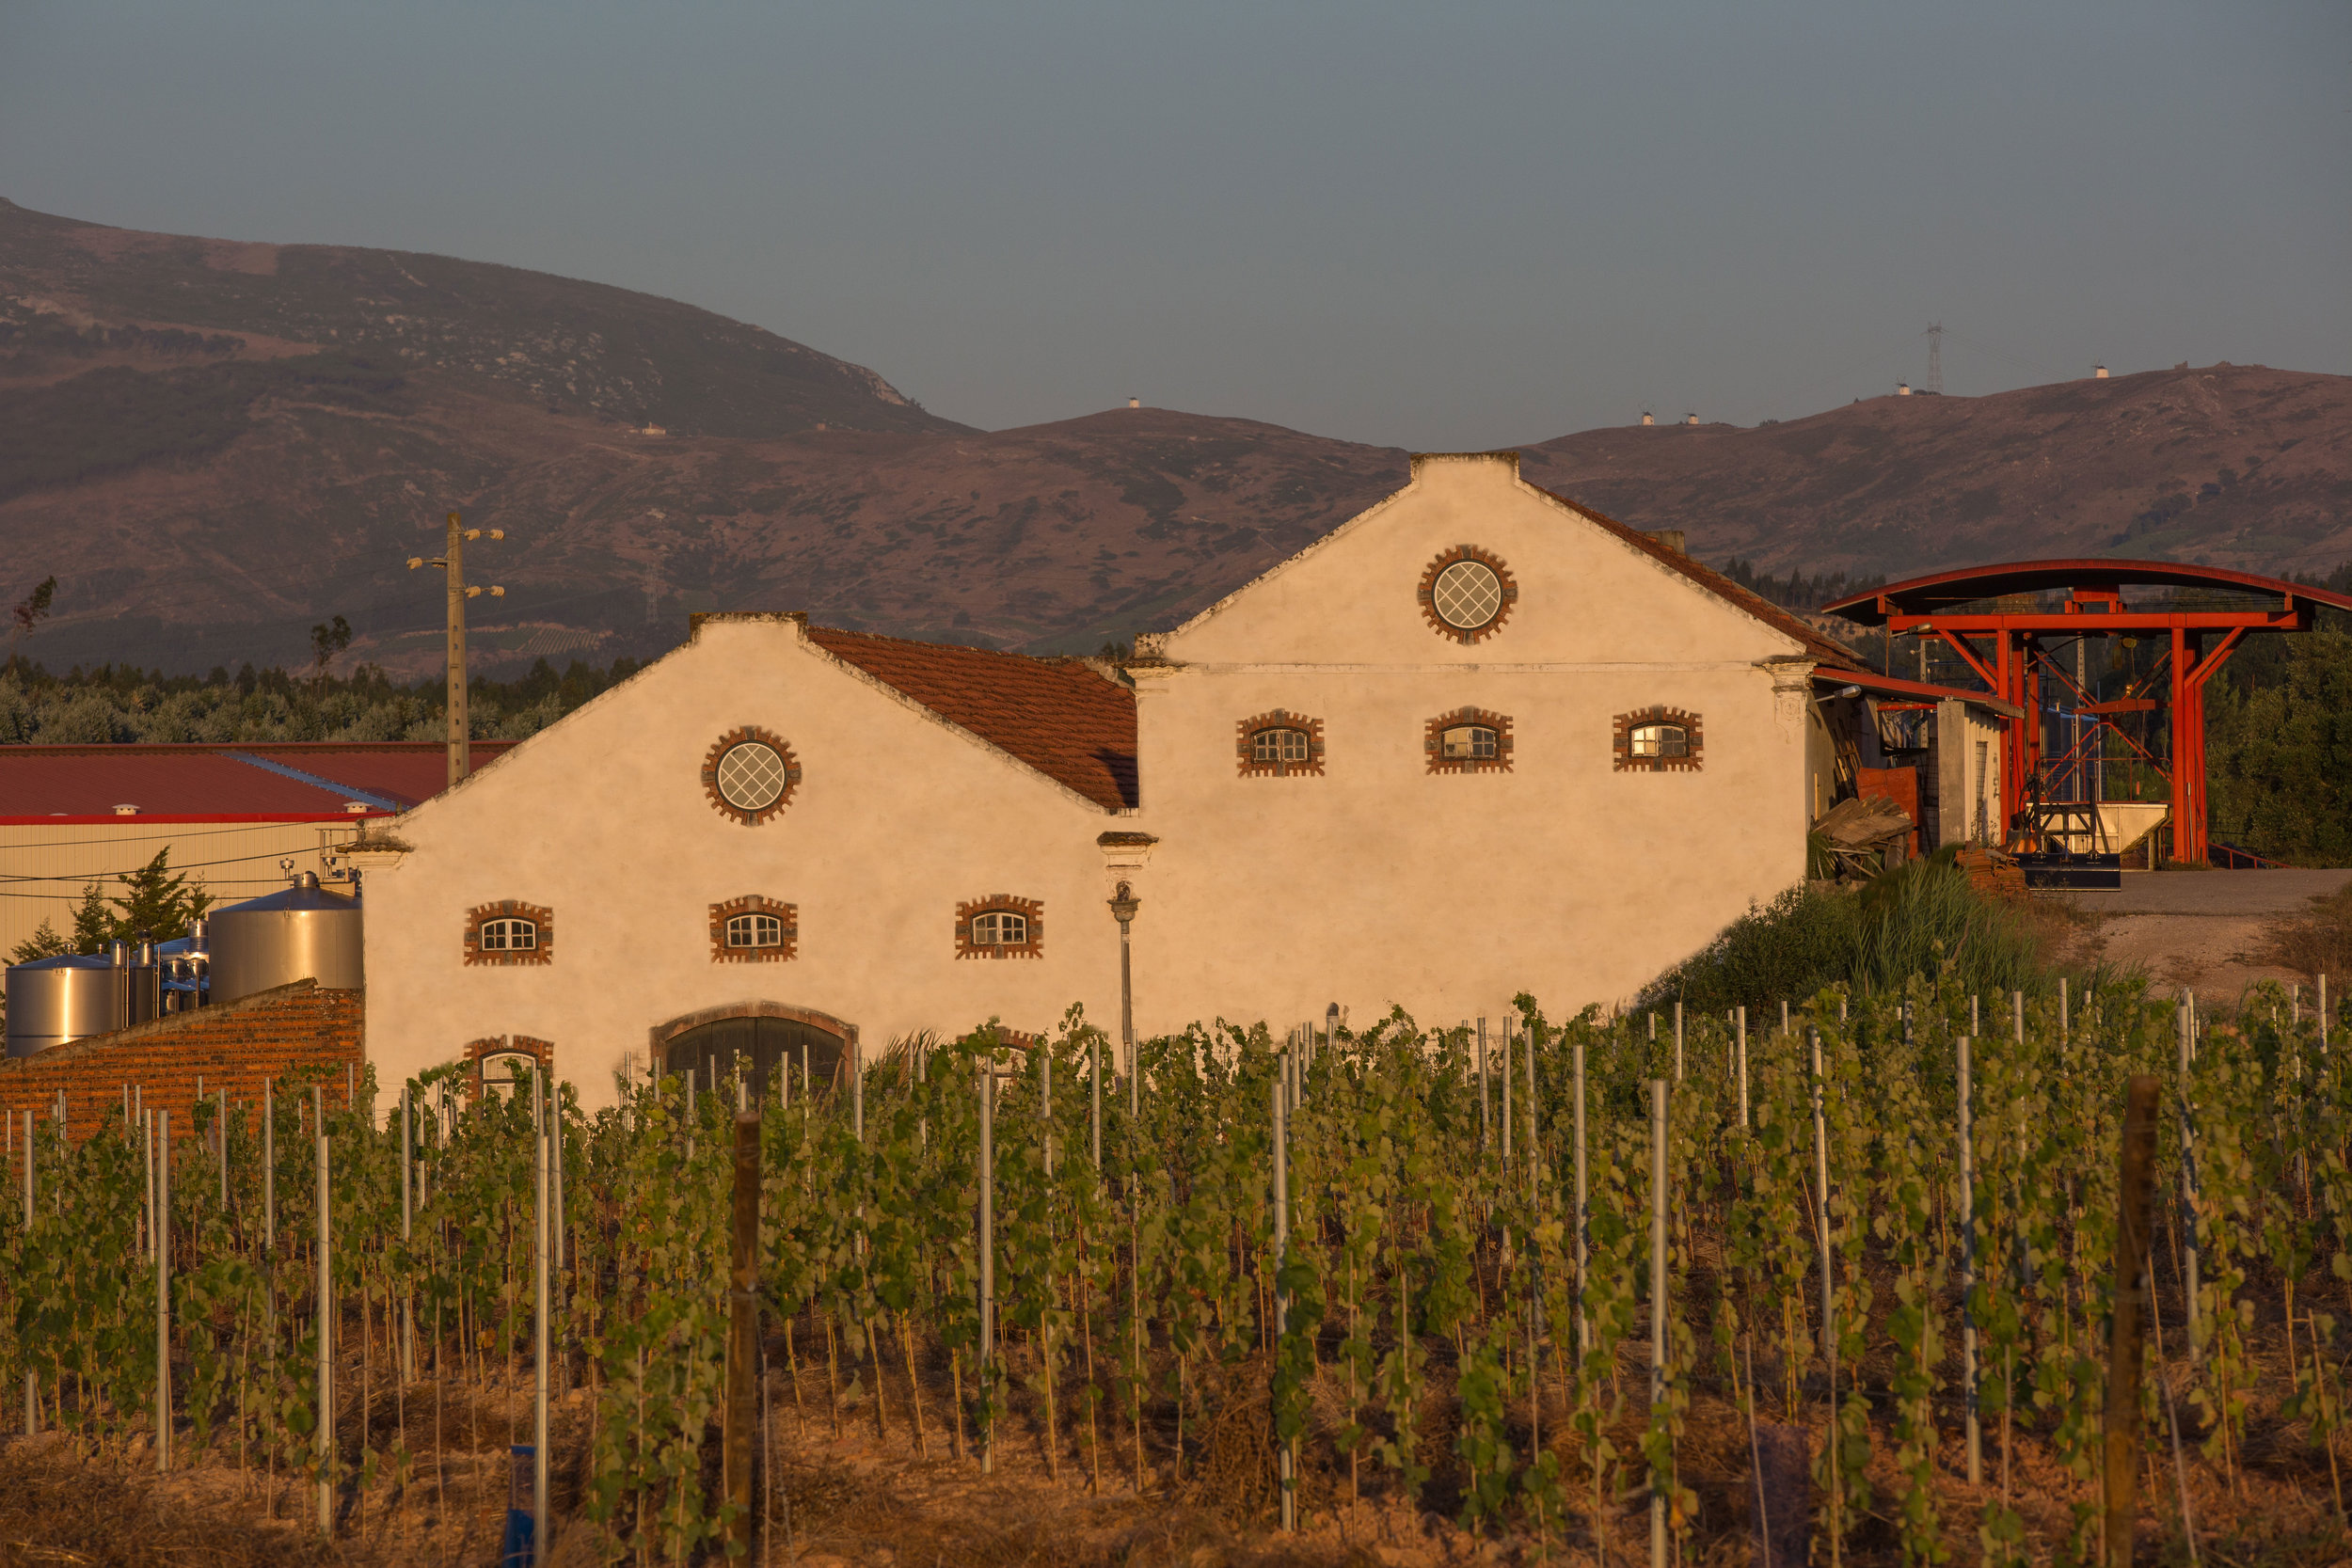 Quinta de S. Francisco. You can just make out the traditional white wine mills on the crest of the hills